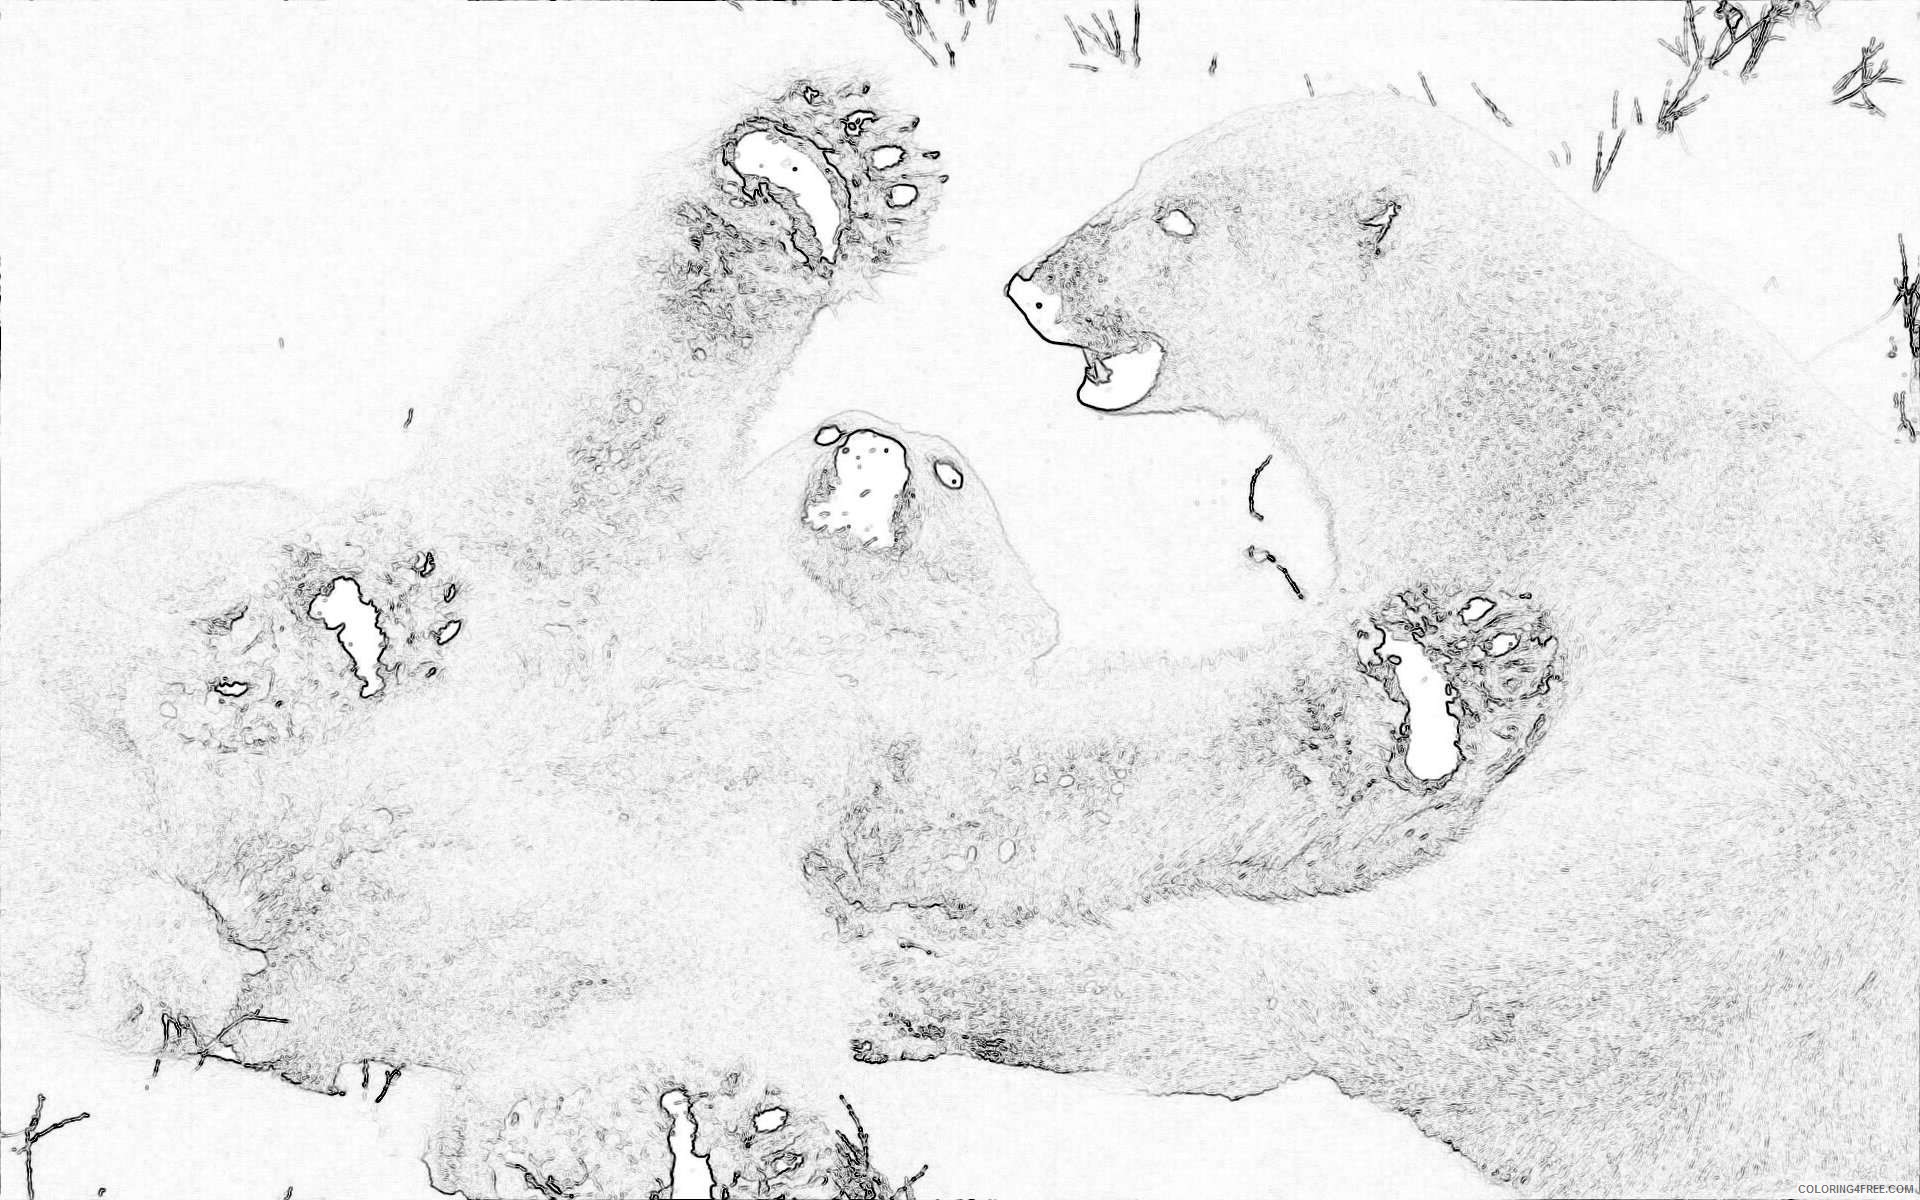 back gallery for bear cub climbing silhouette 4yTwtO coloring